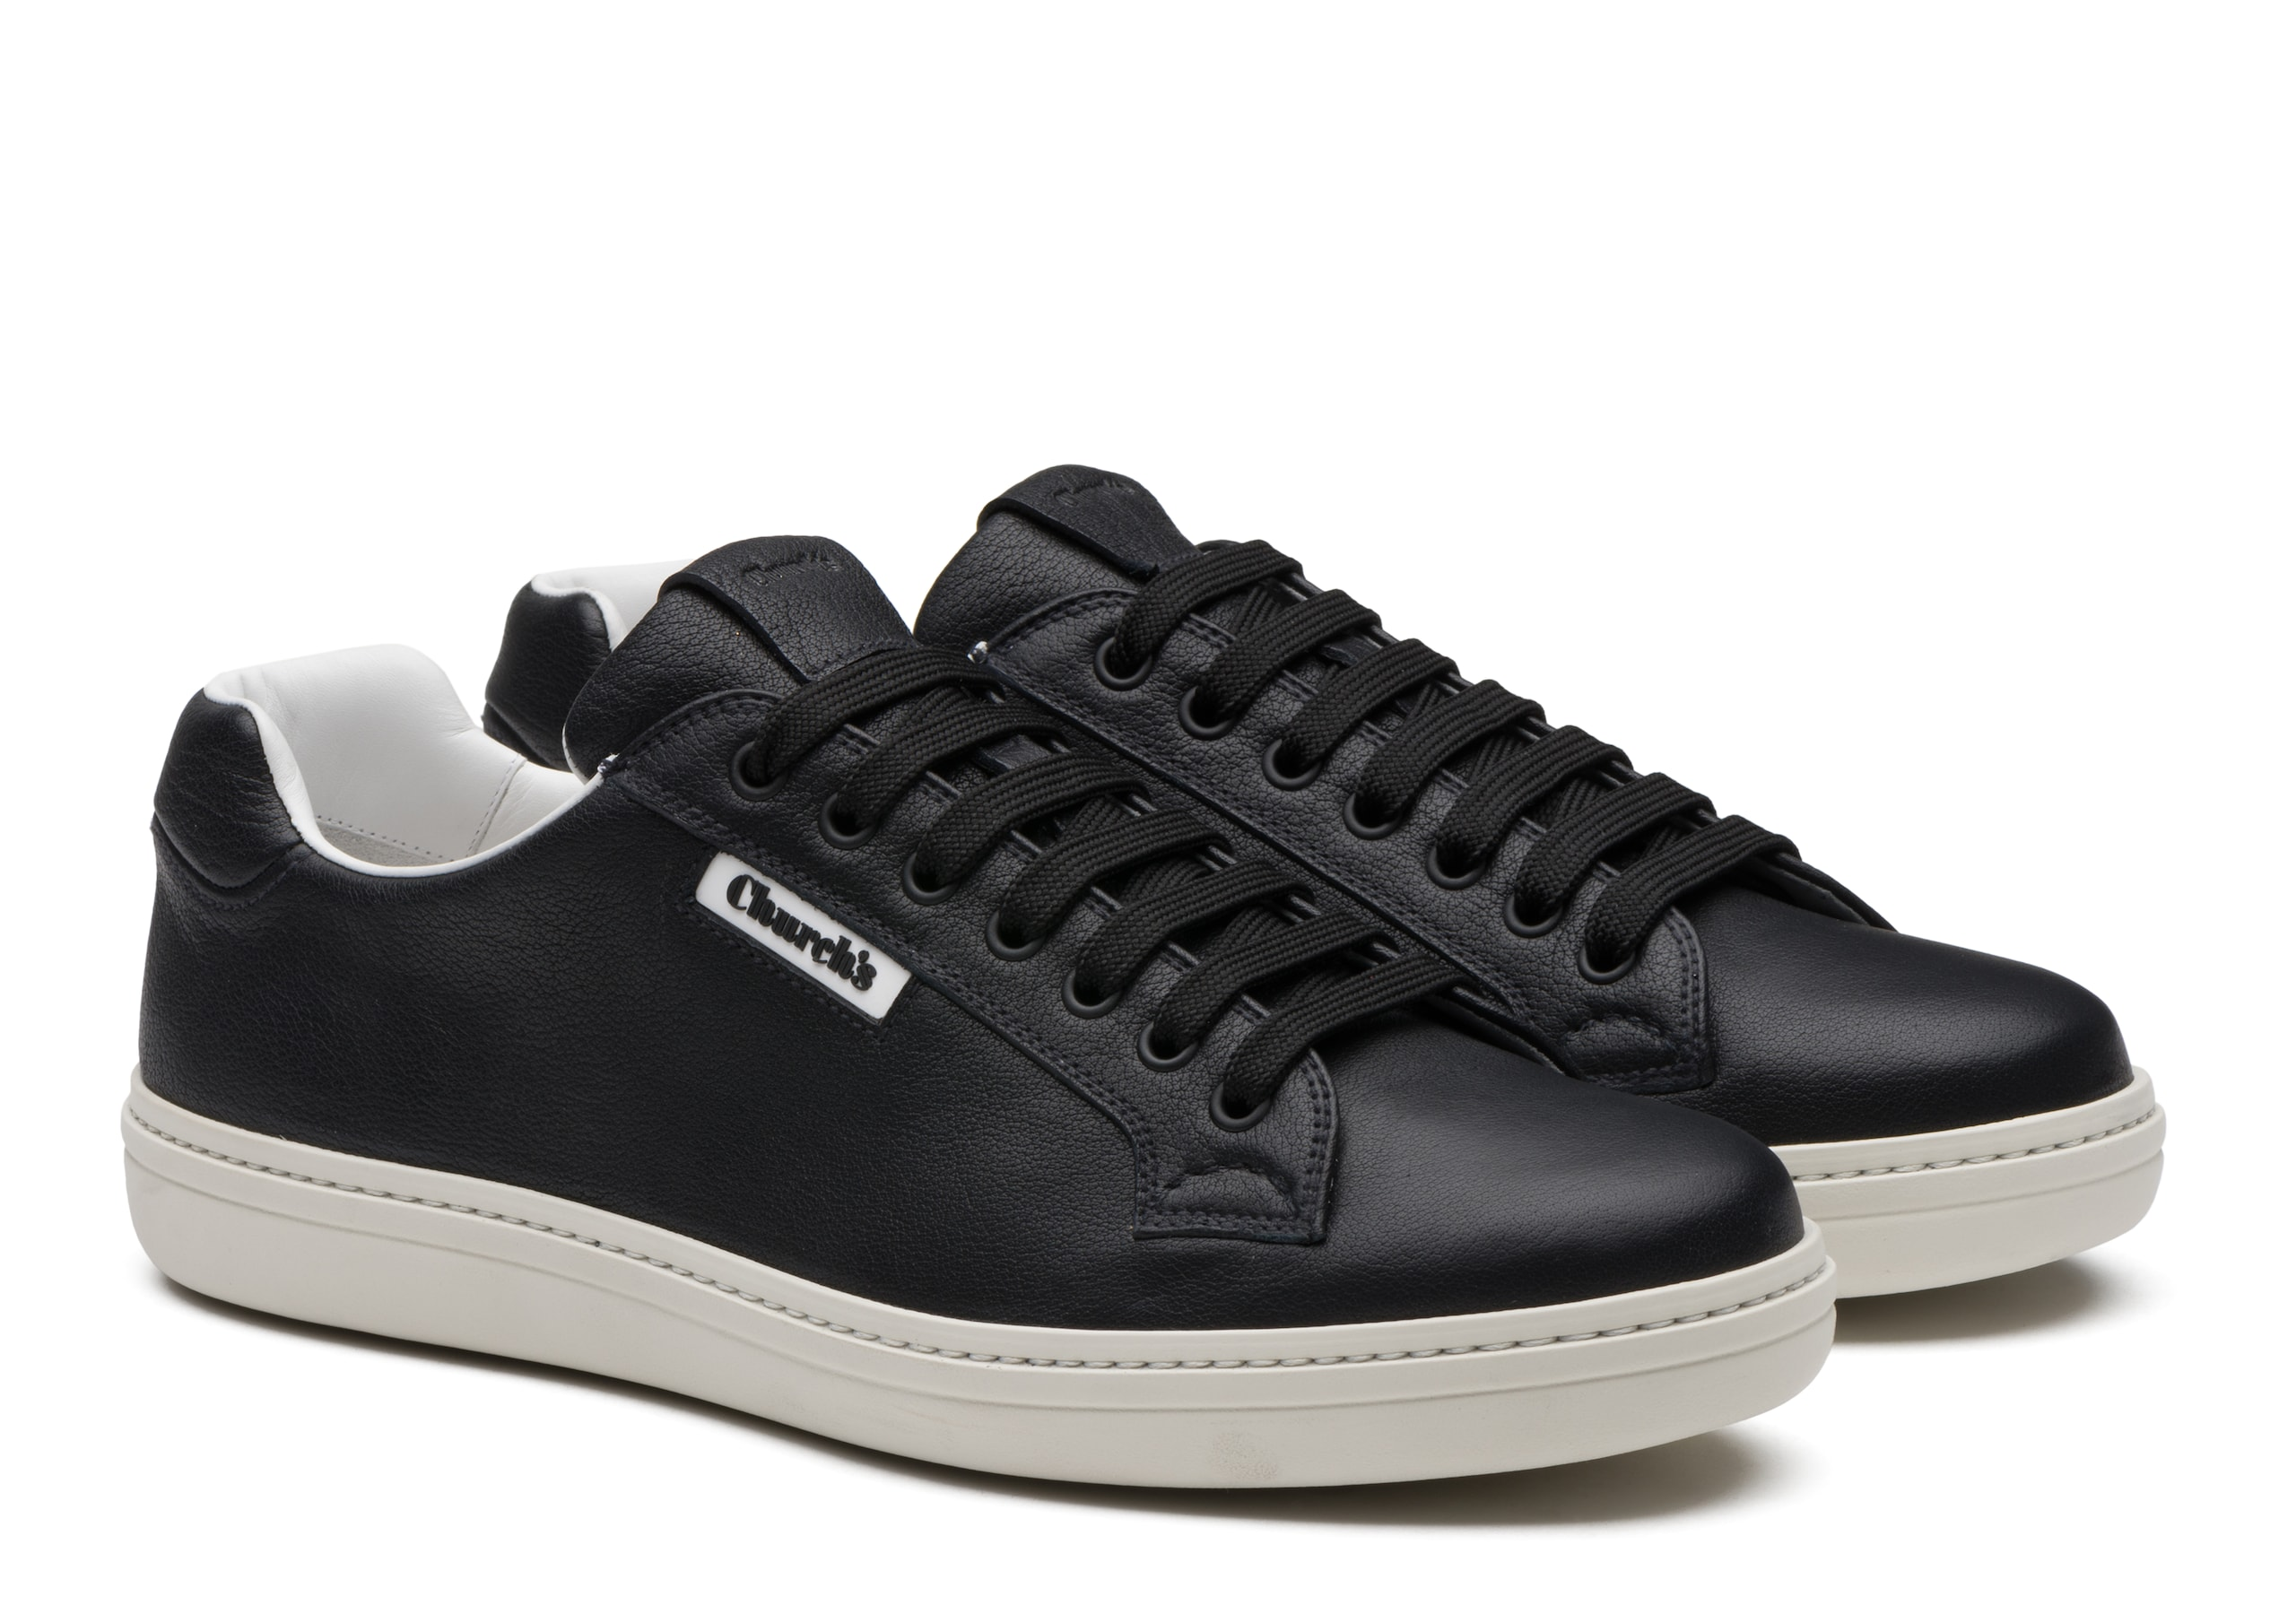 Mirfield 2 Church's Buffalo Leather Classic Sneaker Black